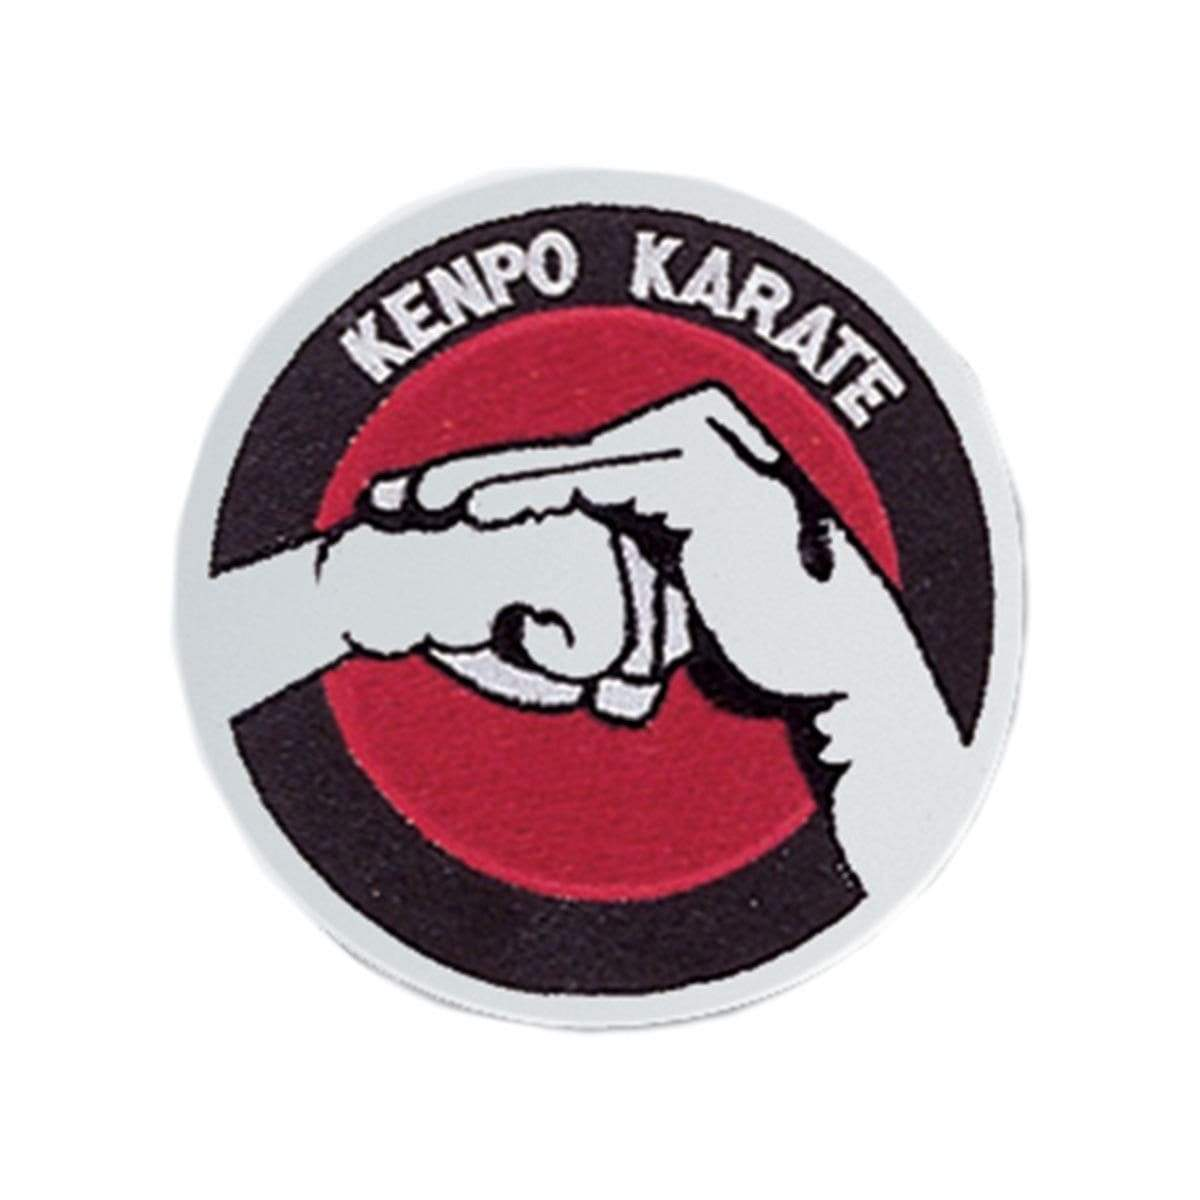 Kenpo Karate Patch c08-p02 - BlackBeltShop